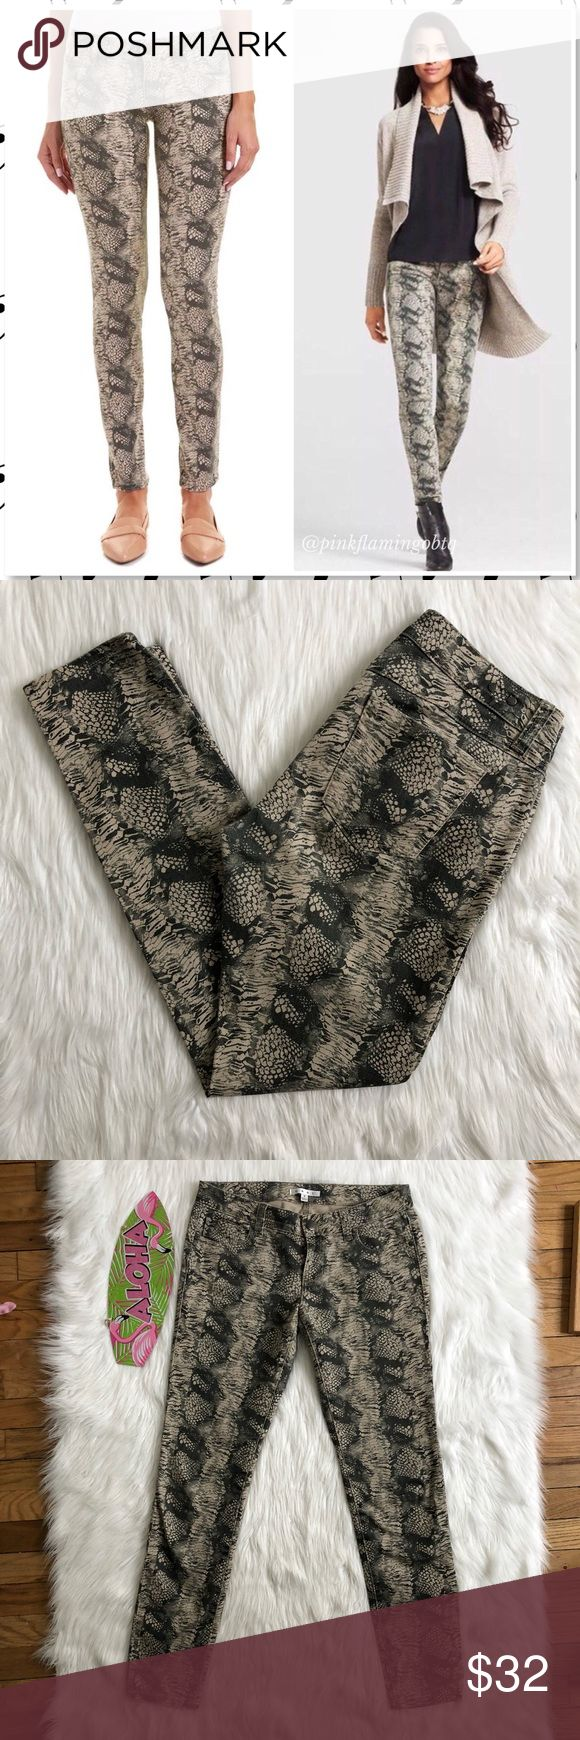 """CAbi Snakeskin Diamondback Print Skinny Jeans 4 Cabi Snakeskin Diamondback Print Skinnies. Neutrals and gray colors make up this fun print skinny jean from CAbi. Snakeskin print, 5 pocket styling with zip and button closure. Good amount of stretch to hug those curves. Gently used condition. Print has slight fade from wash but these jeans are still rockin'. Photos are best descriptors.  Approximate Measurements Waist 15""""(flat) Rise 8"""" Inseam 30"""" CAbi Jeans Skinny"""